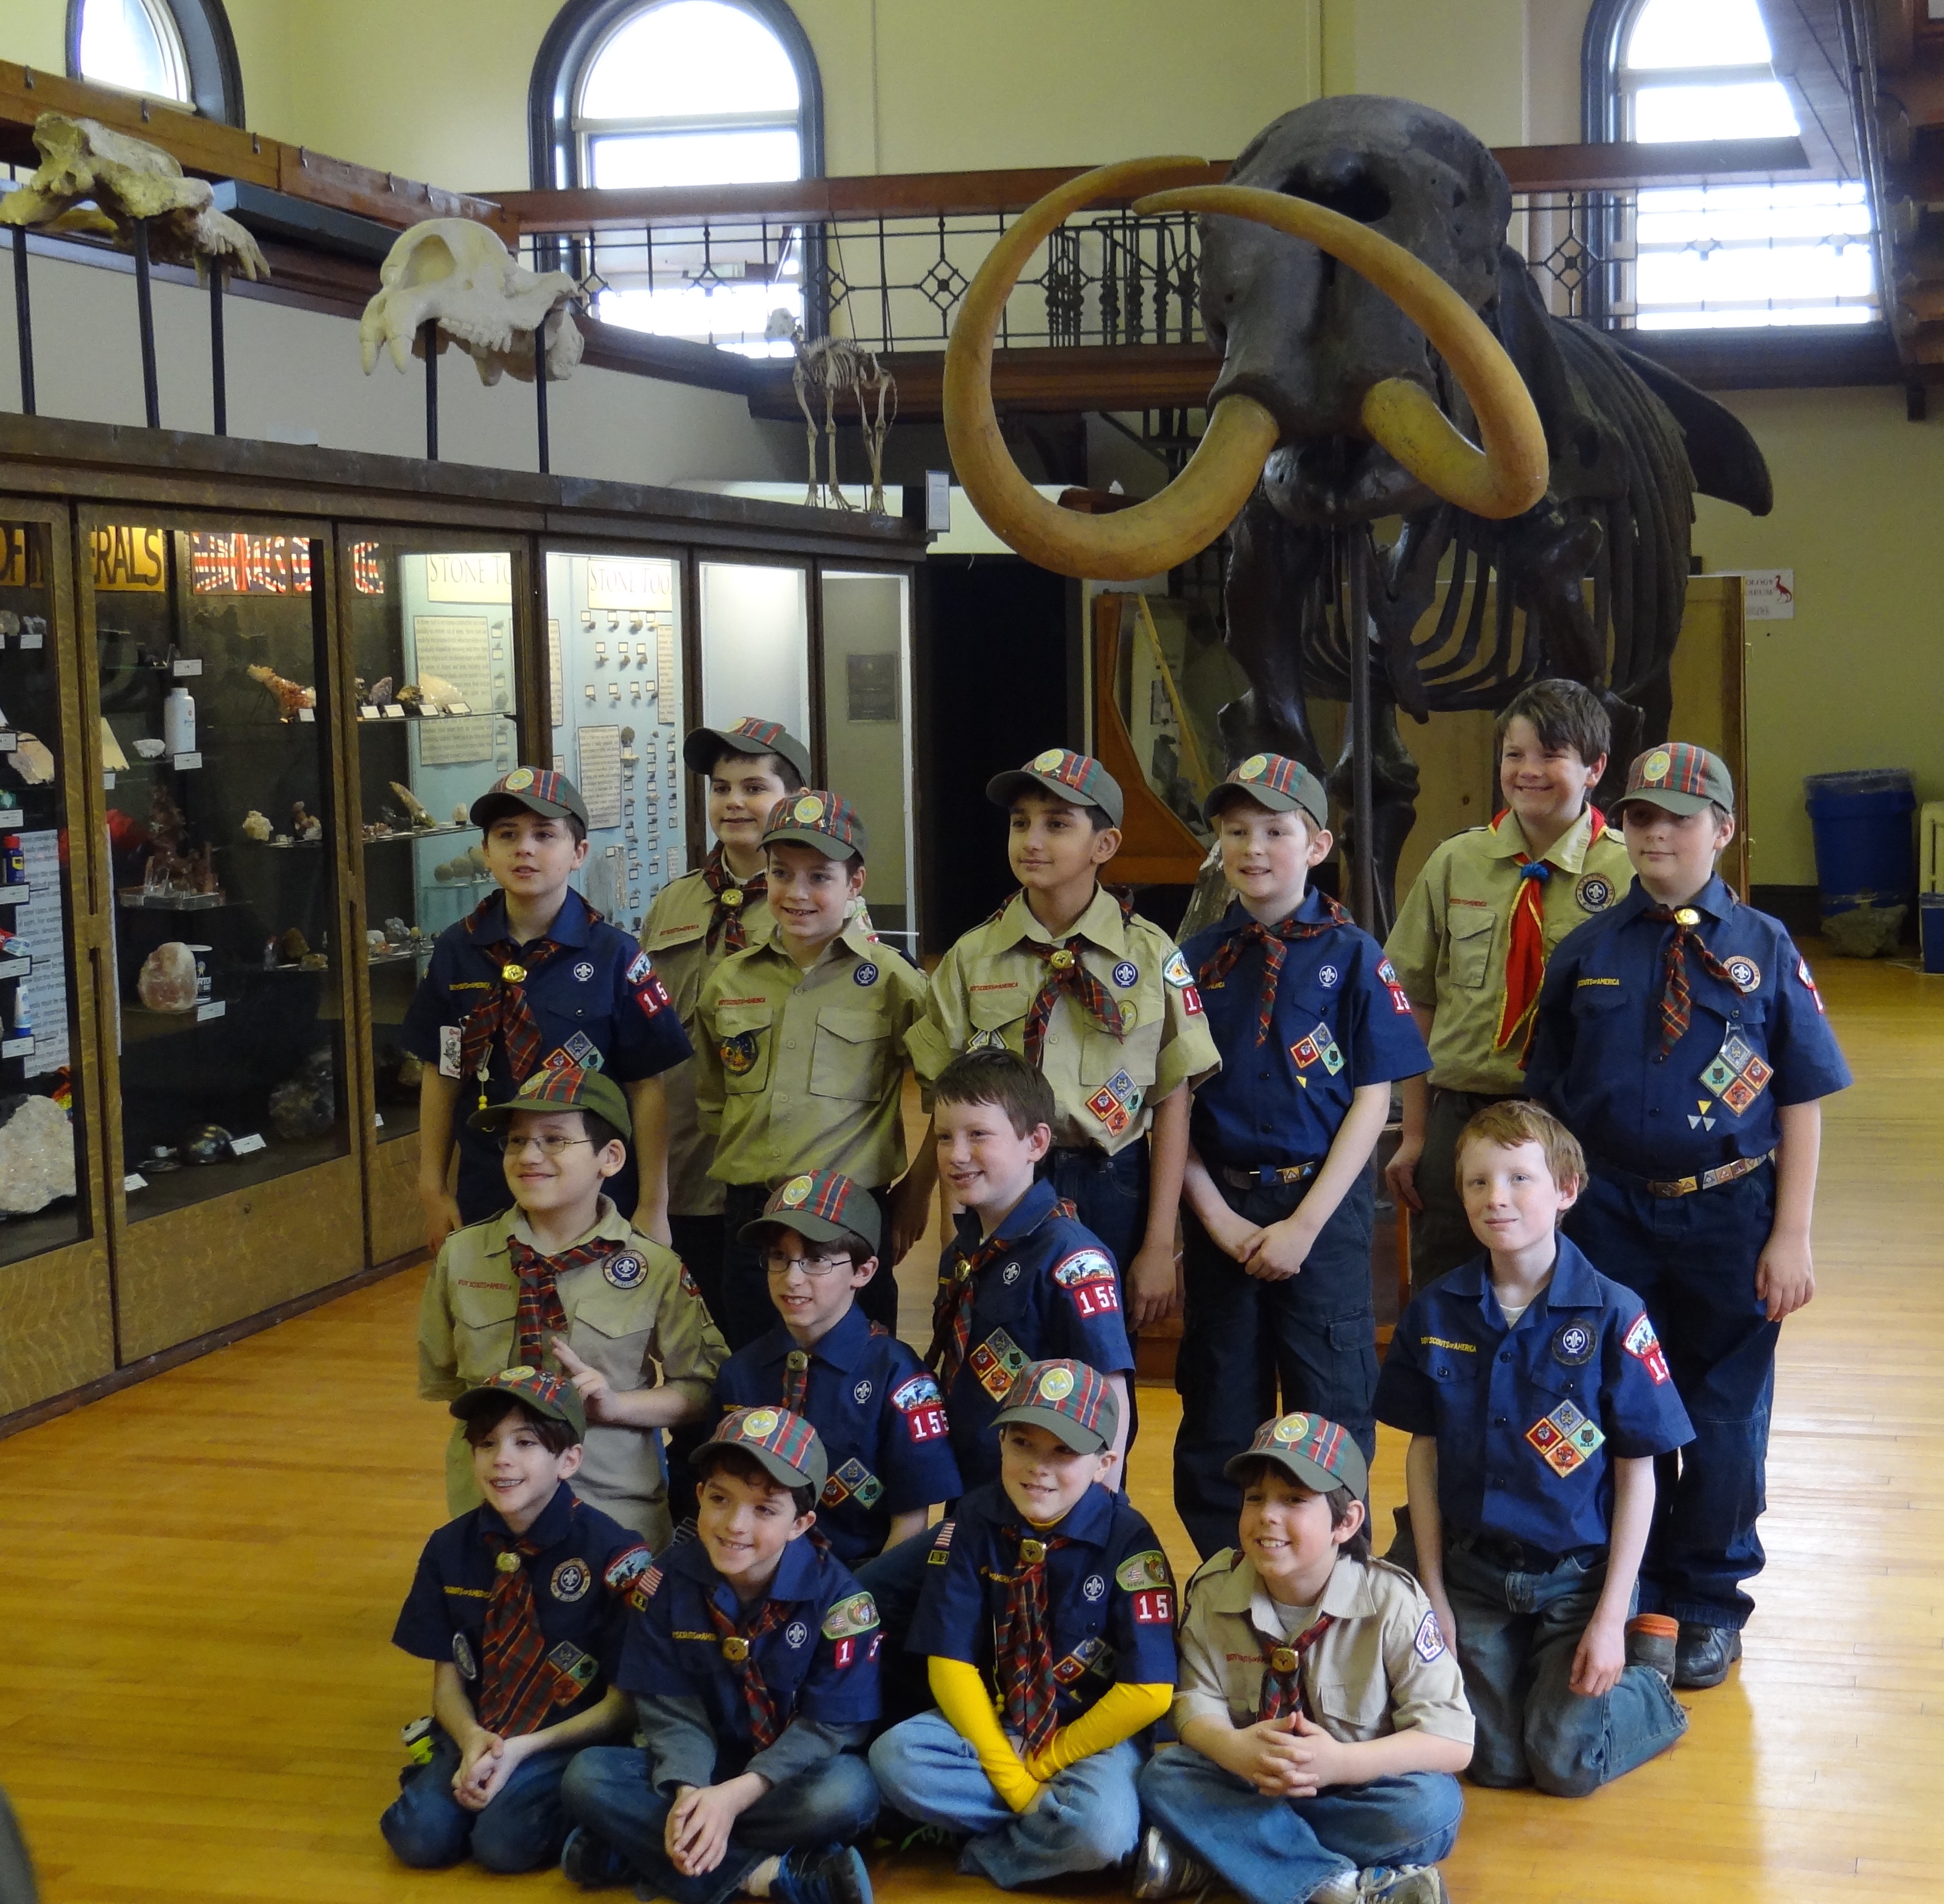 Photo of a boy scout group touring the Museum.